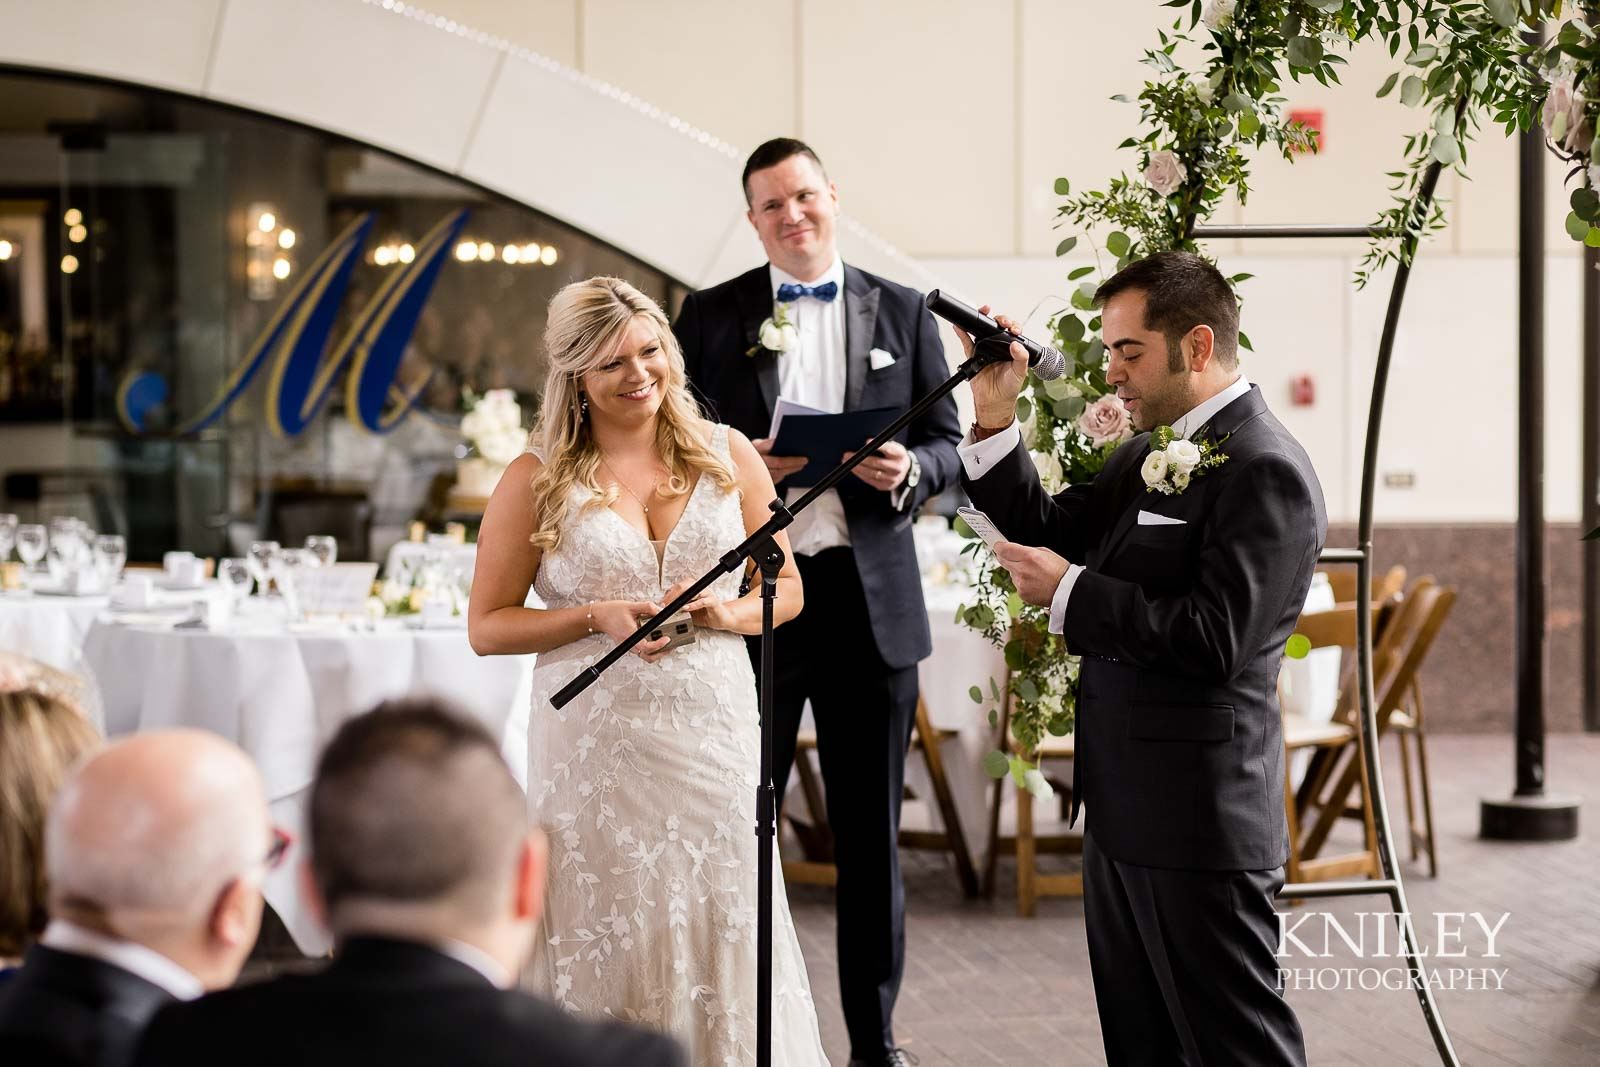 28-Max-of-Eastman-Wedding-and-Reception-Rochester-NY-Kniley-Photography.jpg